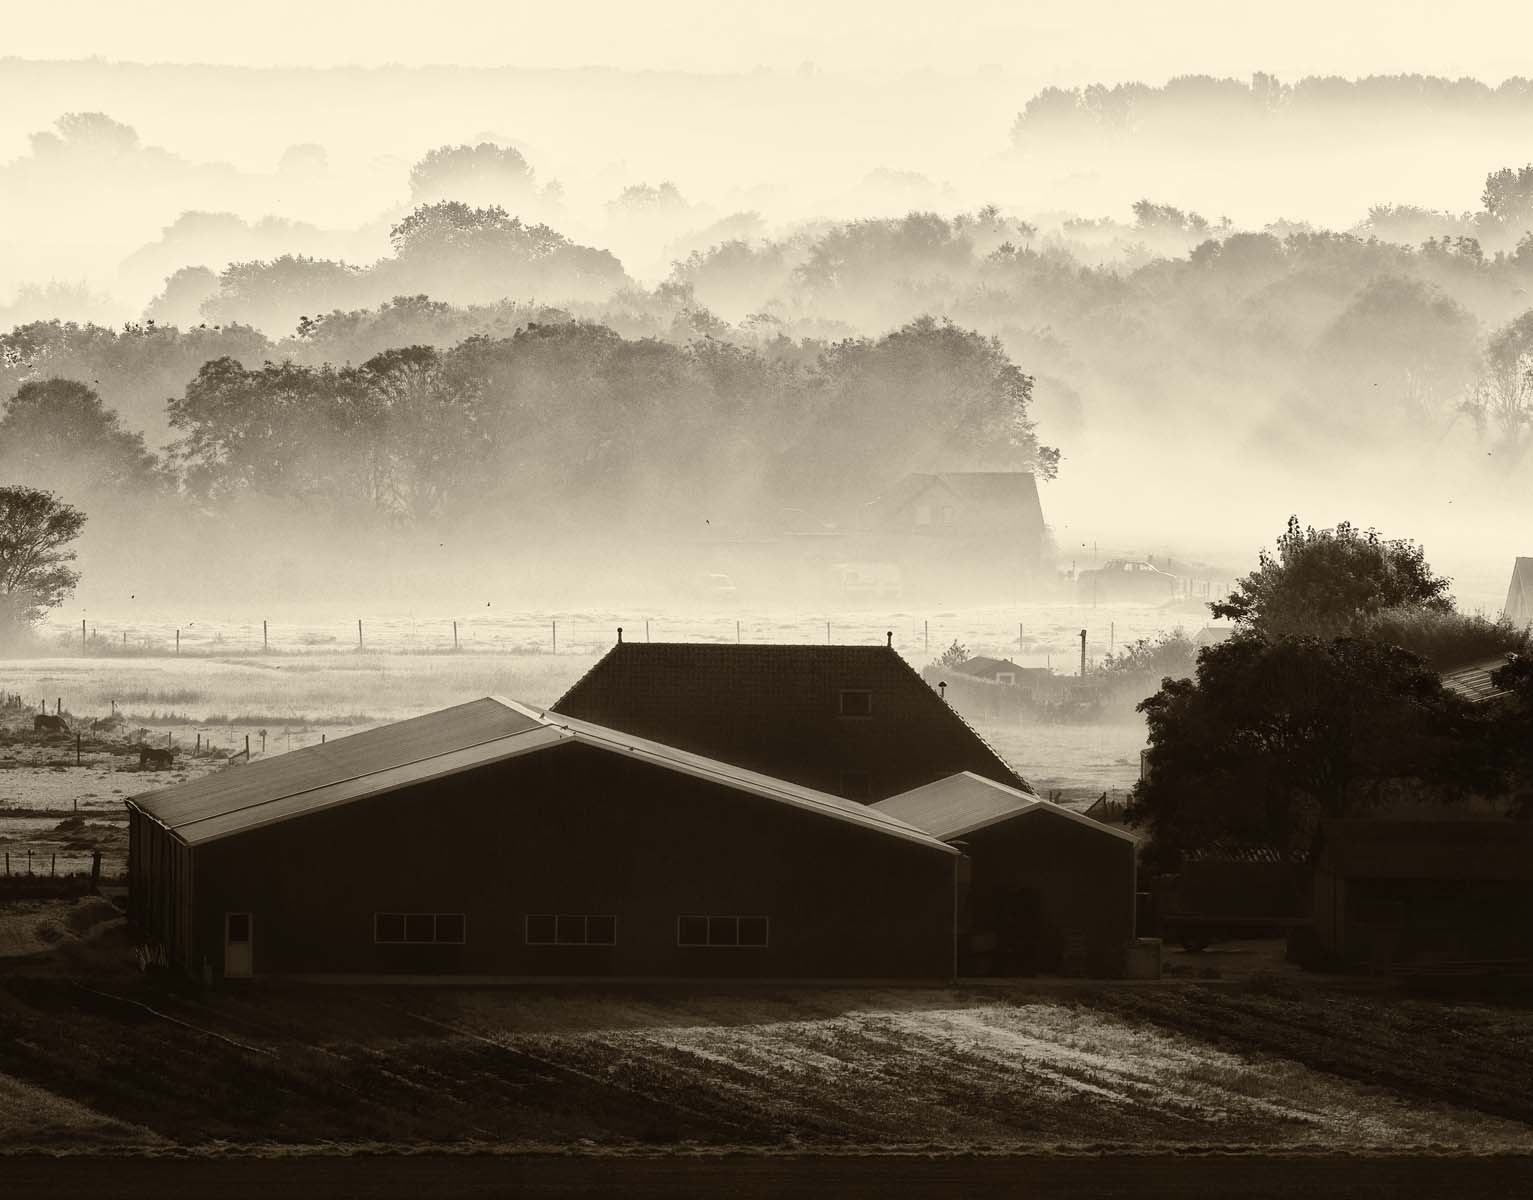 mist and morning light